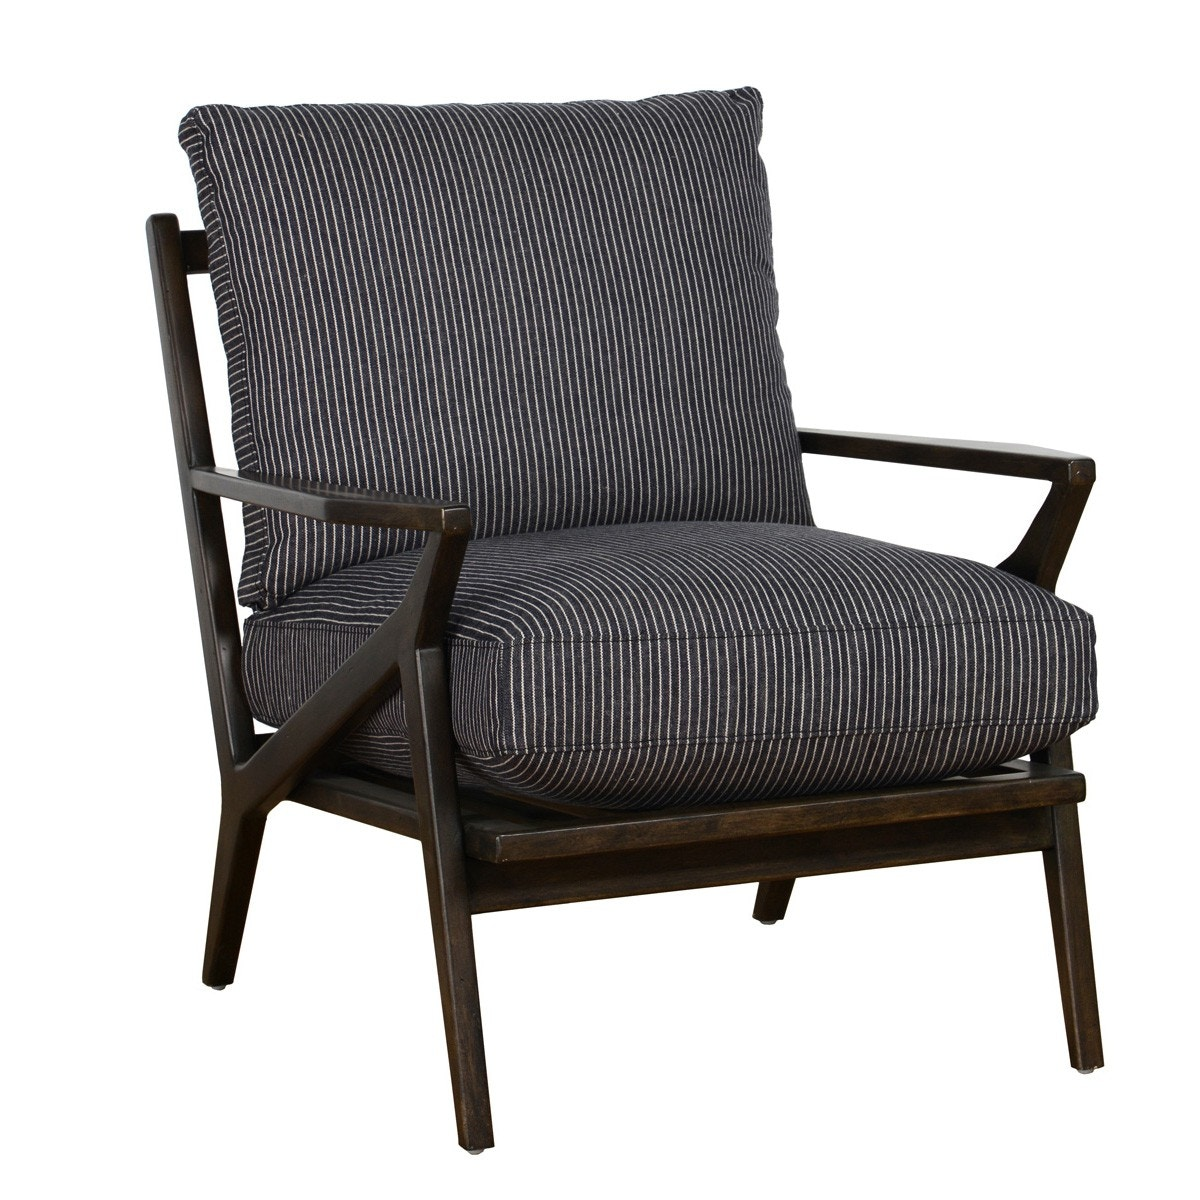 wood frame accent chairs dining chair upholstery fabric online classic home emmett striped 53004058 portland or in oregon